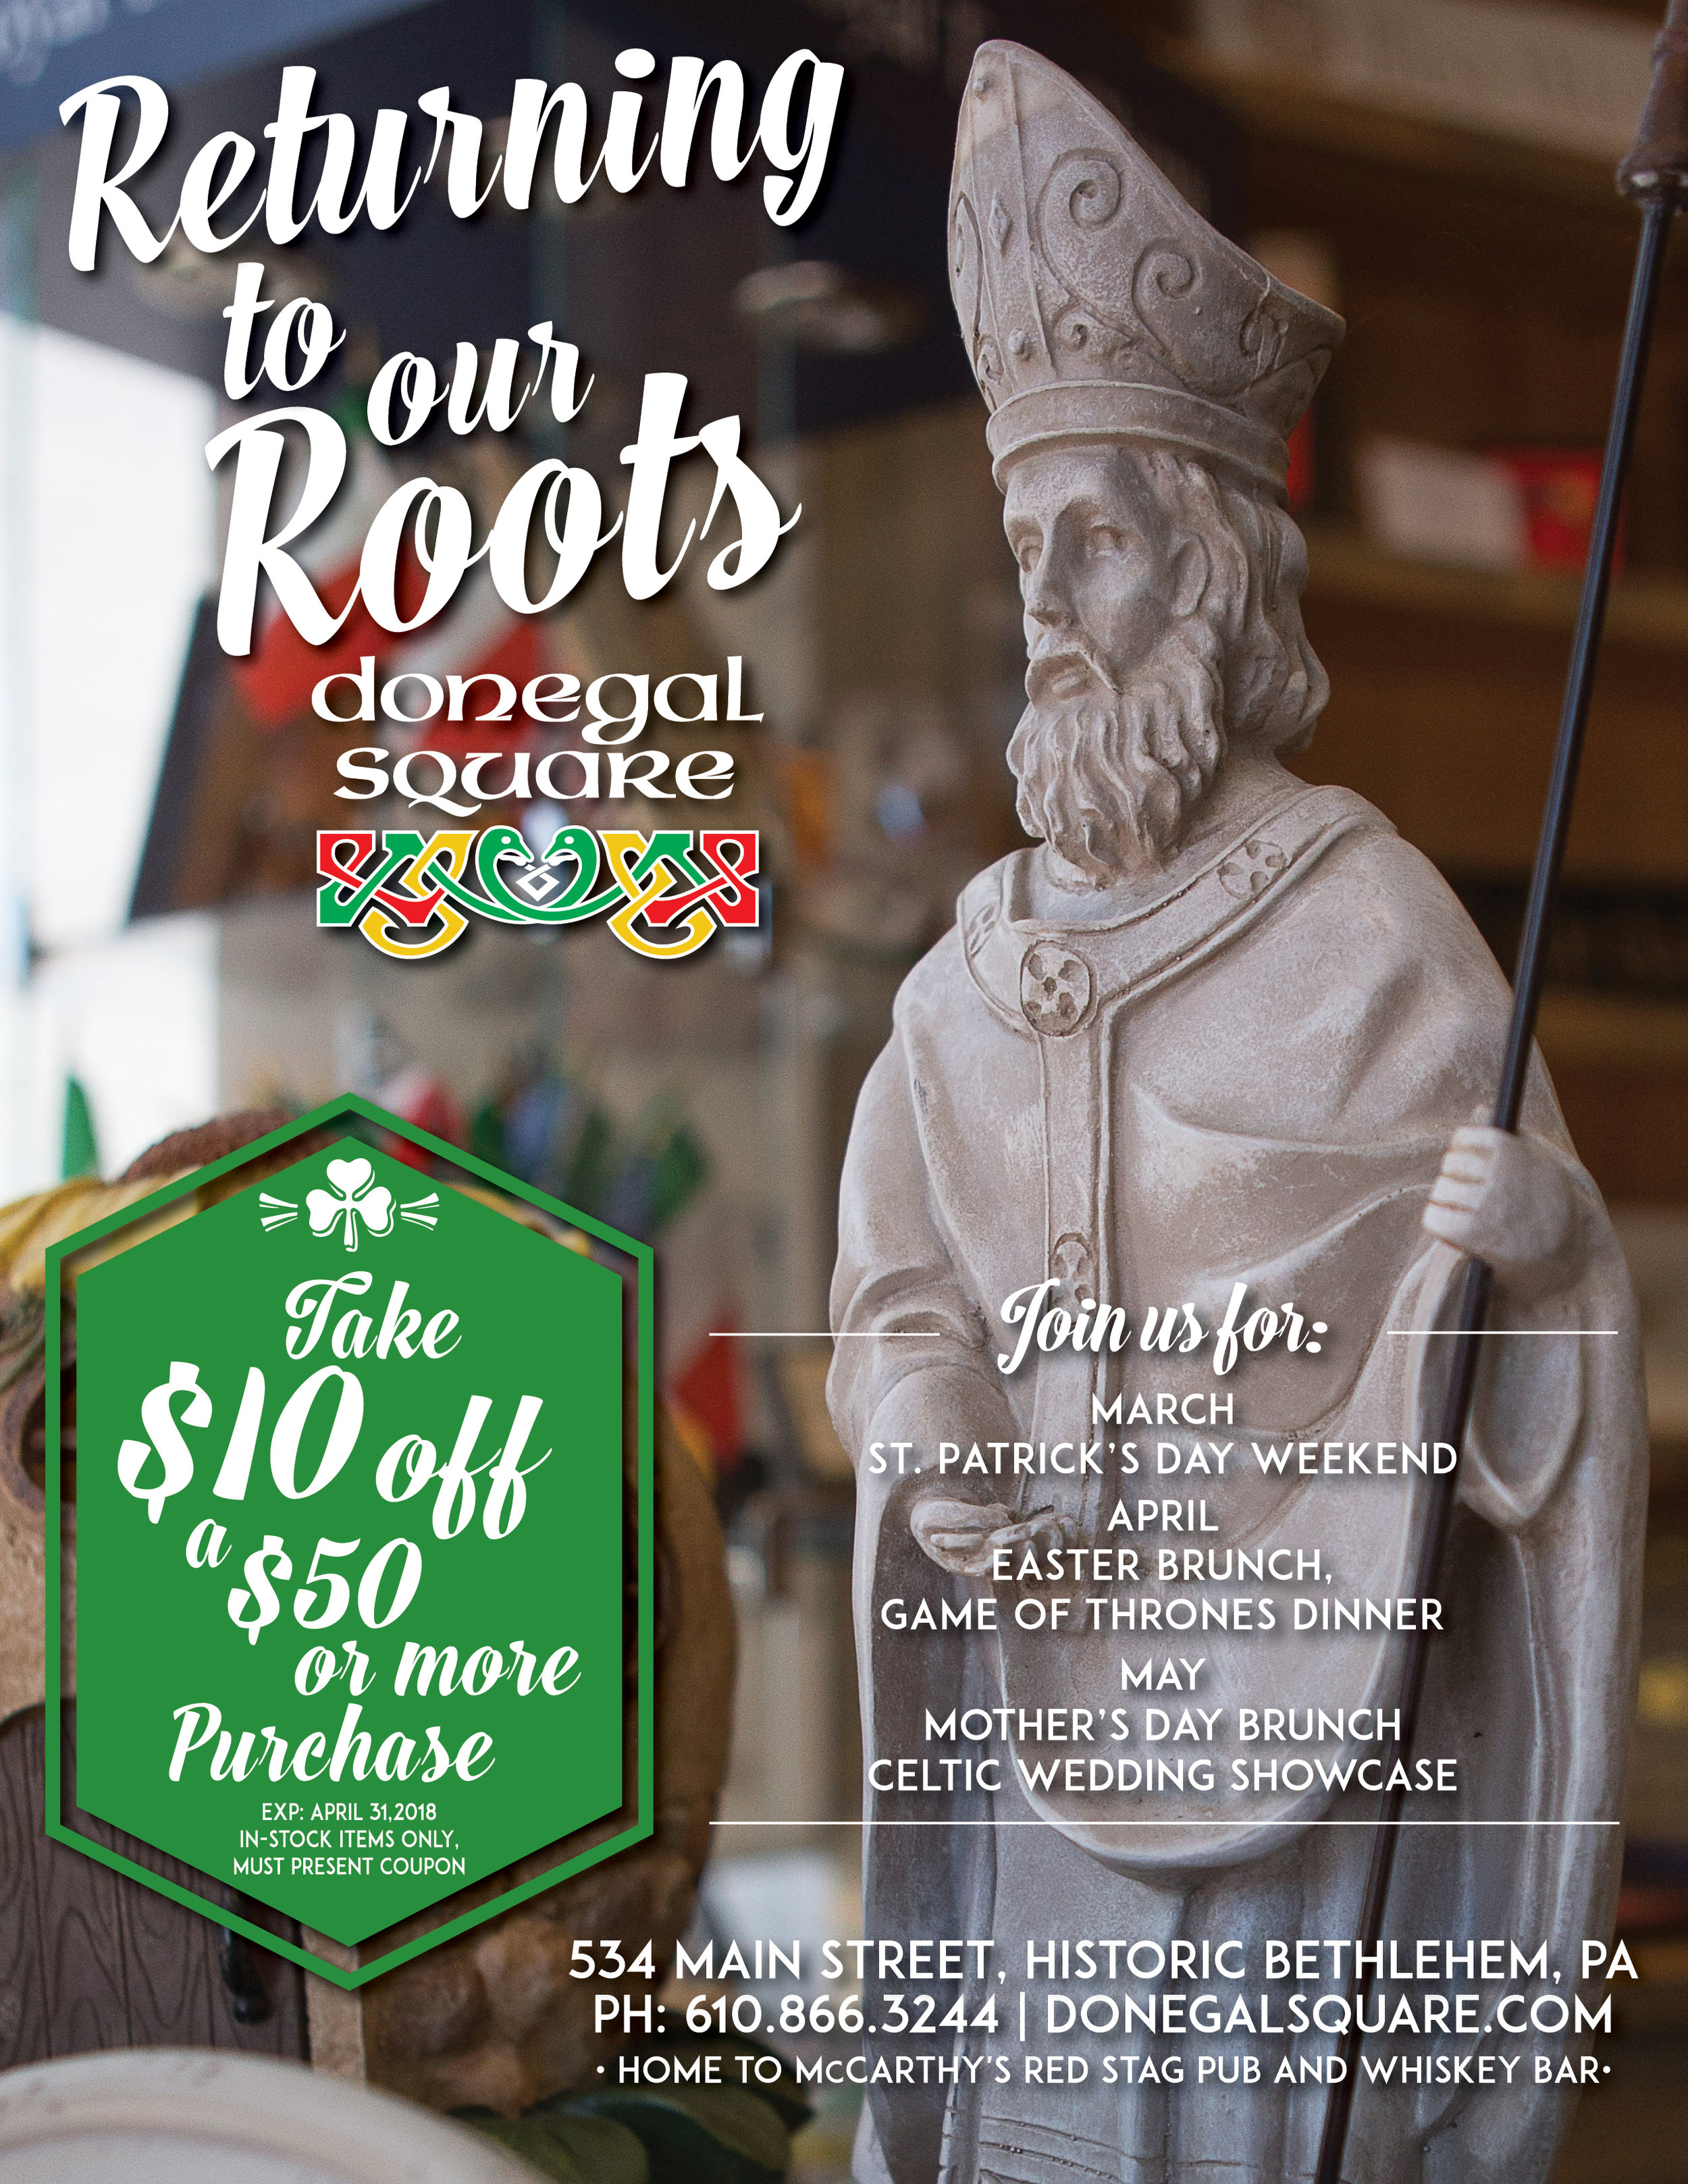 RETURN TO OUR ROOTS • FULL PAGE ADVERTISEMENT   CLIENT: DONEGAL SQUARE • BETHLEHEM, PA BRIEF: Traditional, Coupon, Appeal to St. Patrick's Day crowd. PLACEMENT: Allentown St. Patrick's Day Parade Book, 2018 WORK: Copywriting and layout through Adobe InDesign